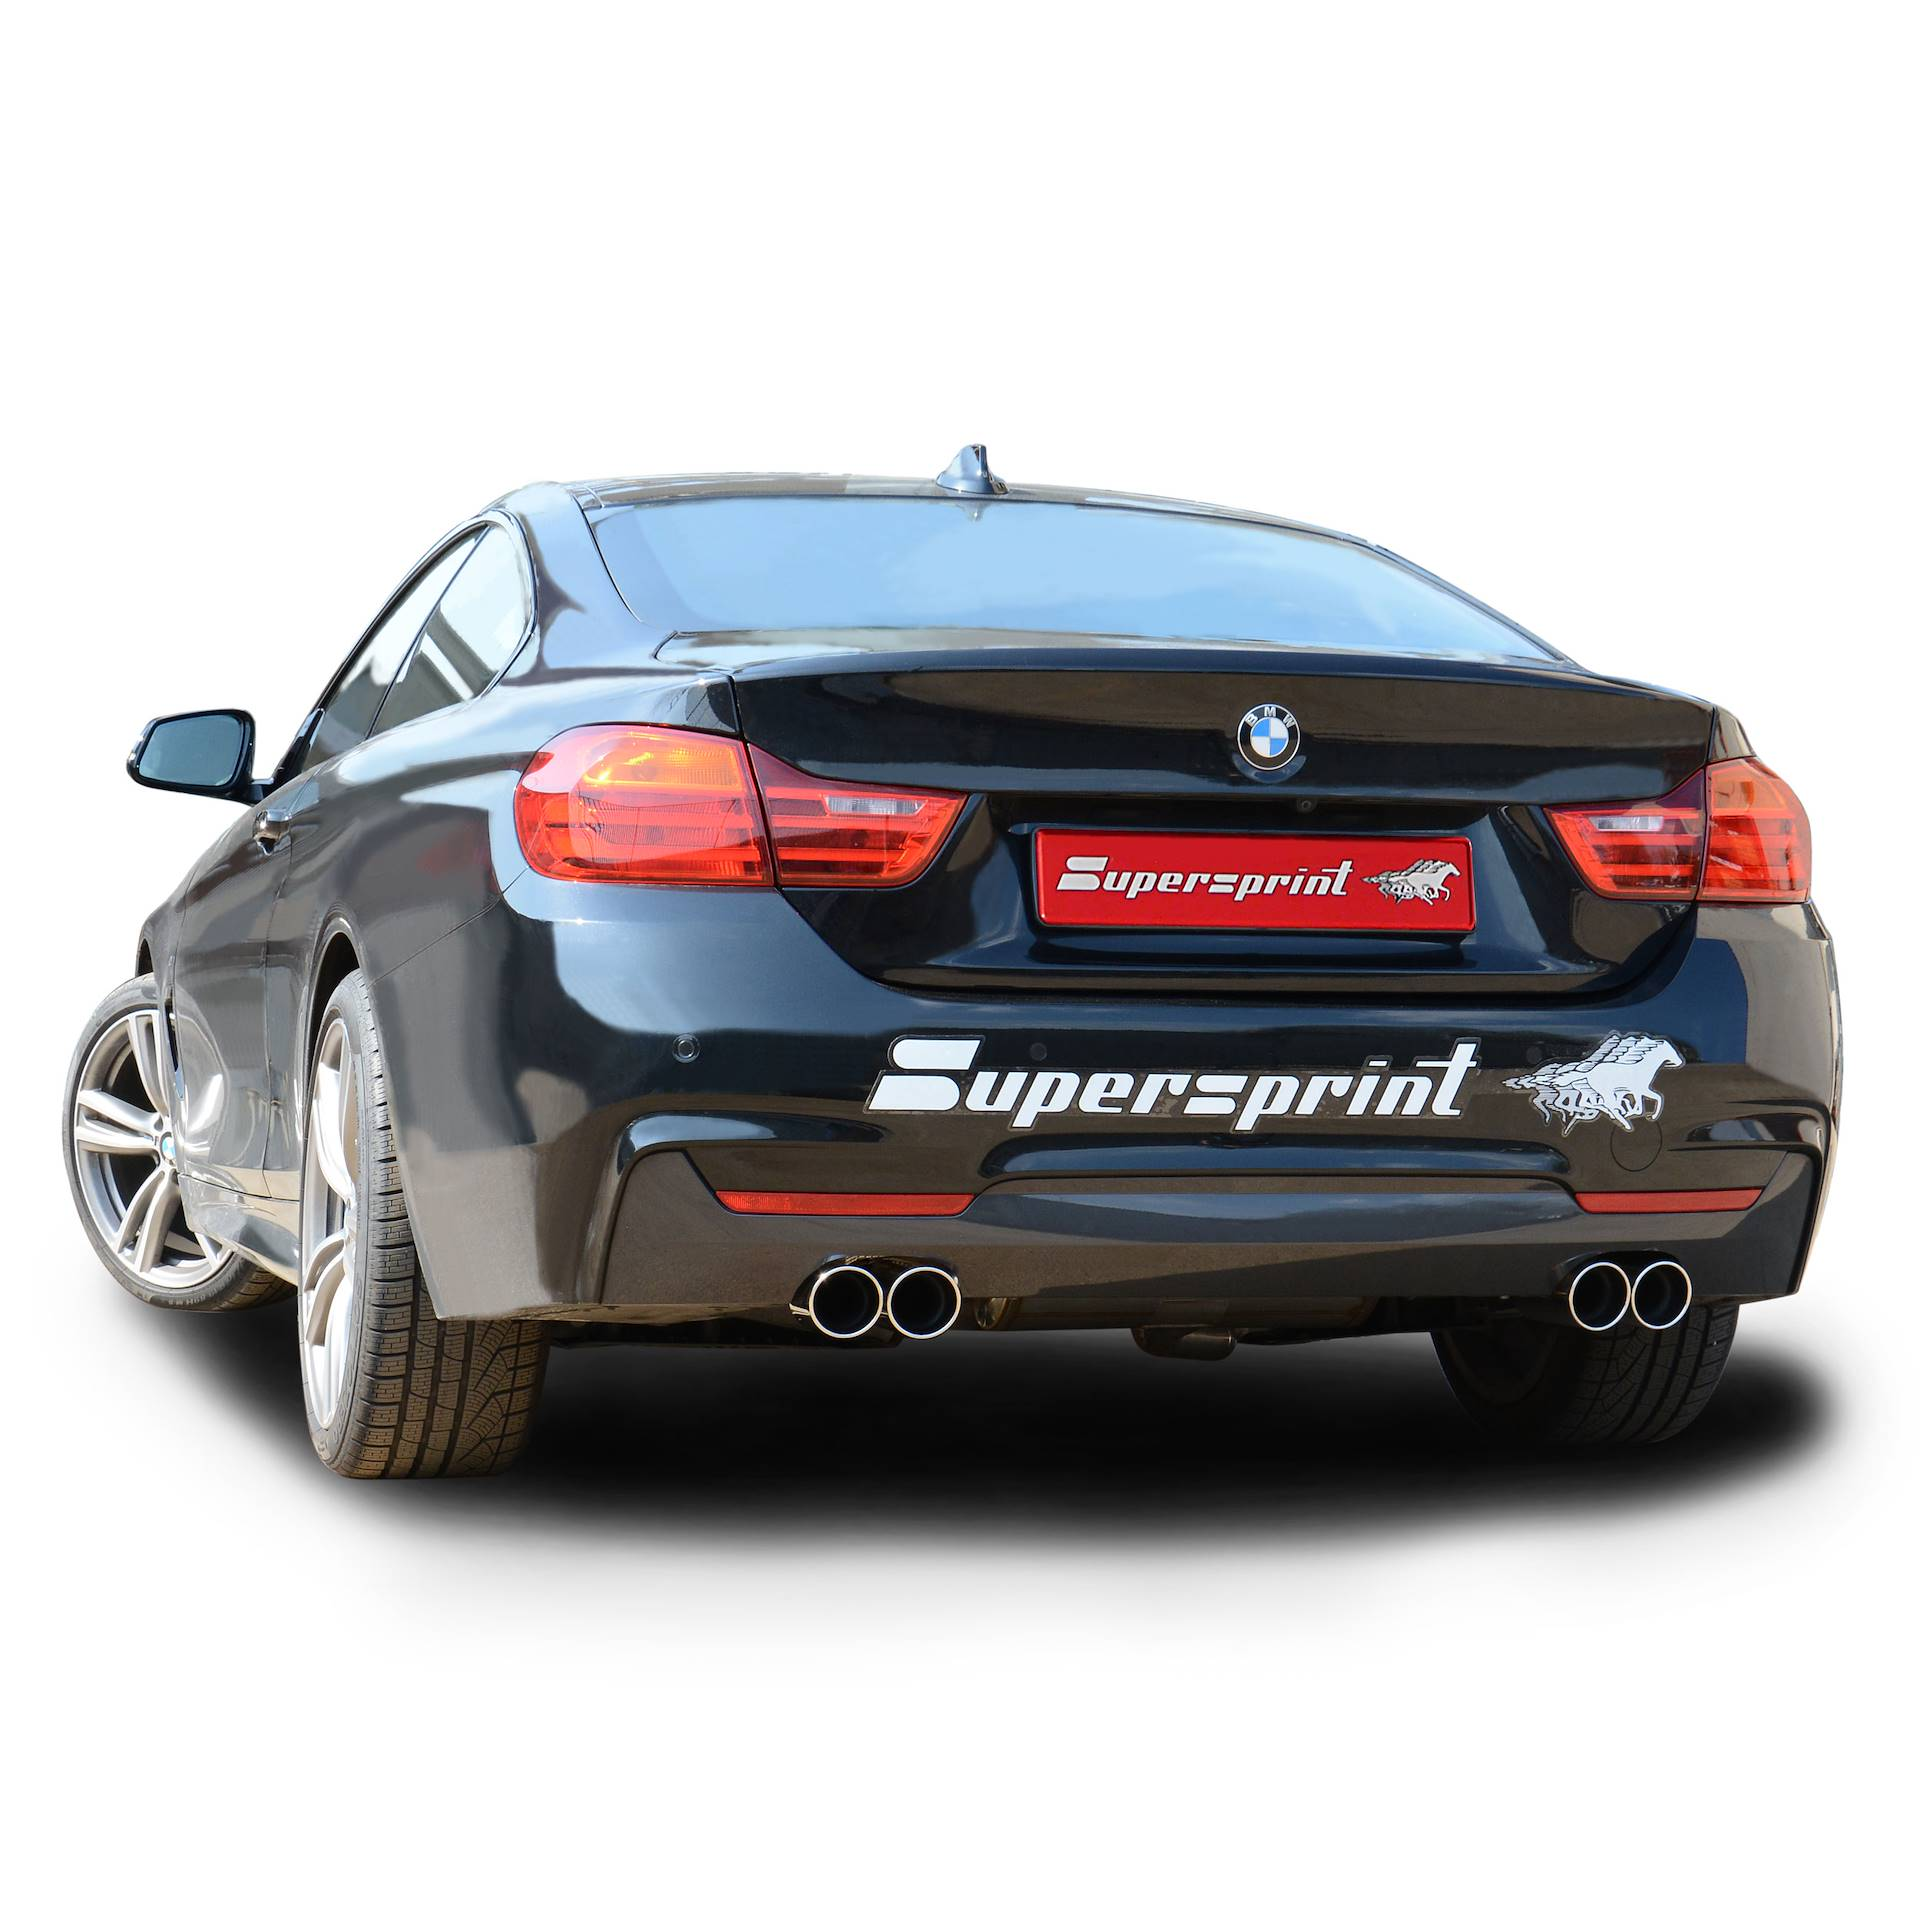 BMW - BMW F32 Coupè 435i (304 Hp/306 Hp) 2013 ->